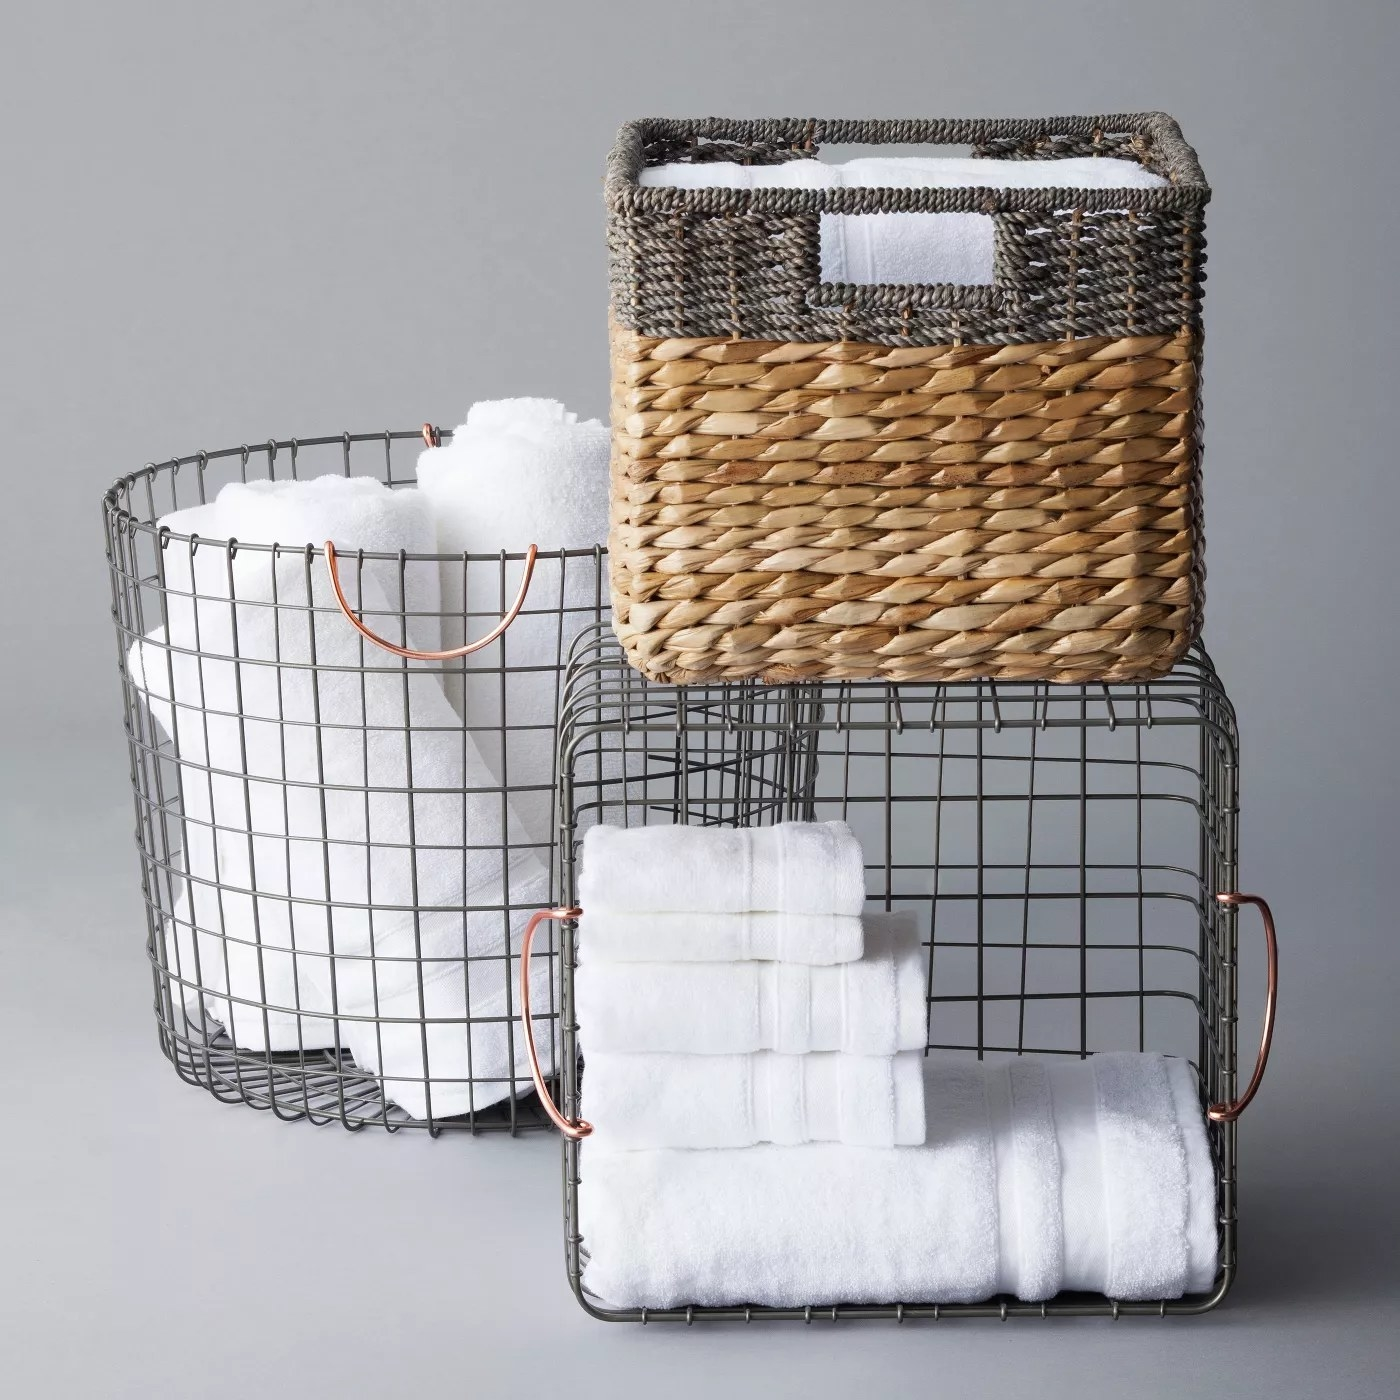 The basket holds folded bath towels and is displayed with two other types of baskets